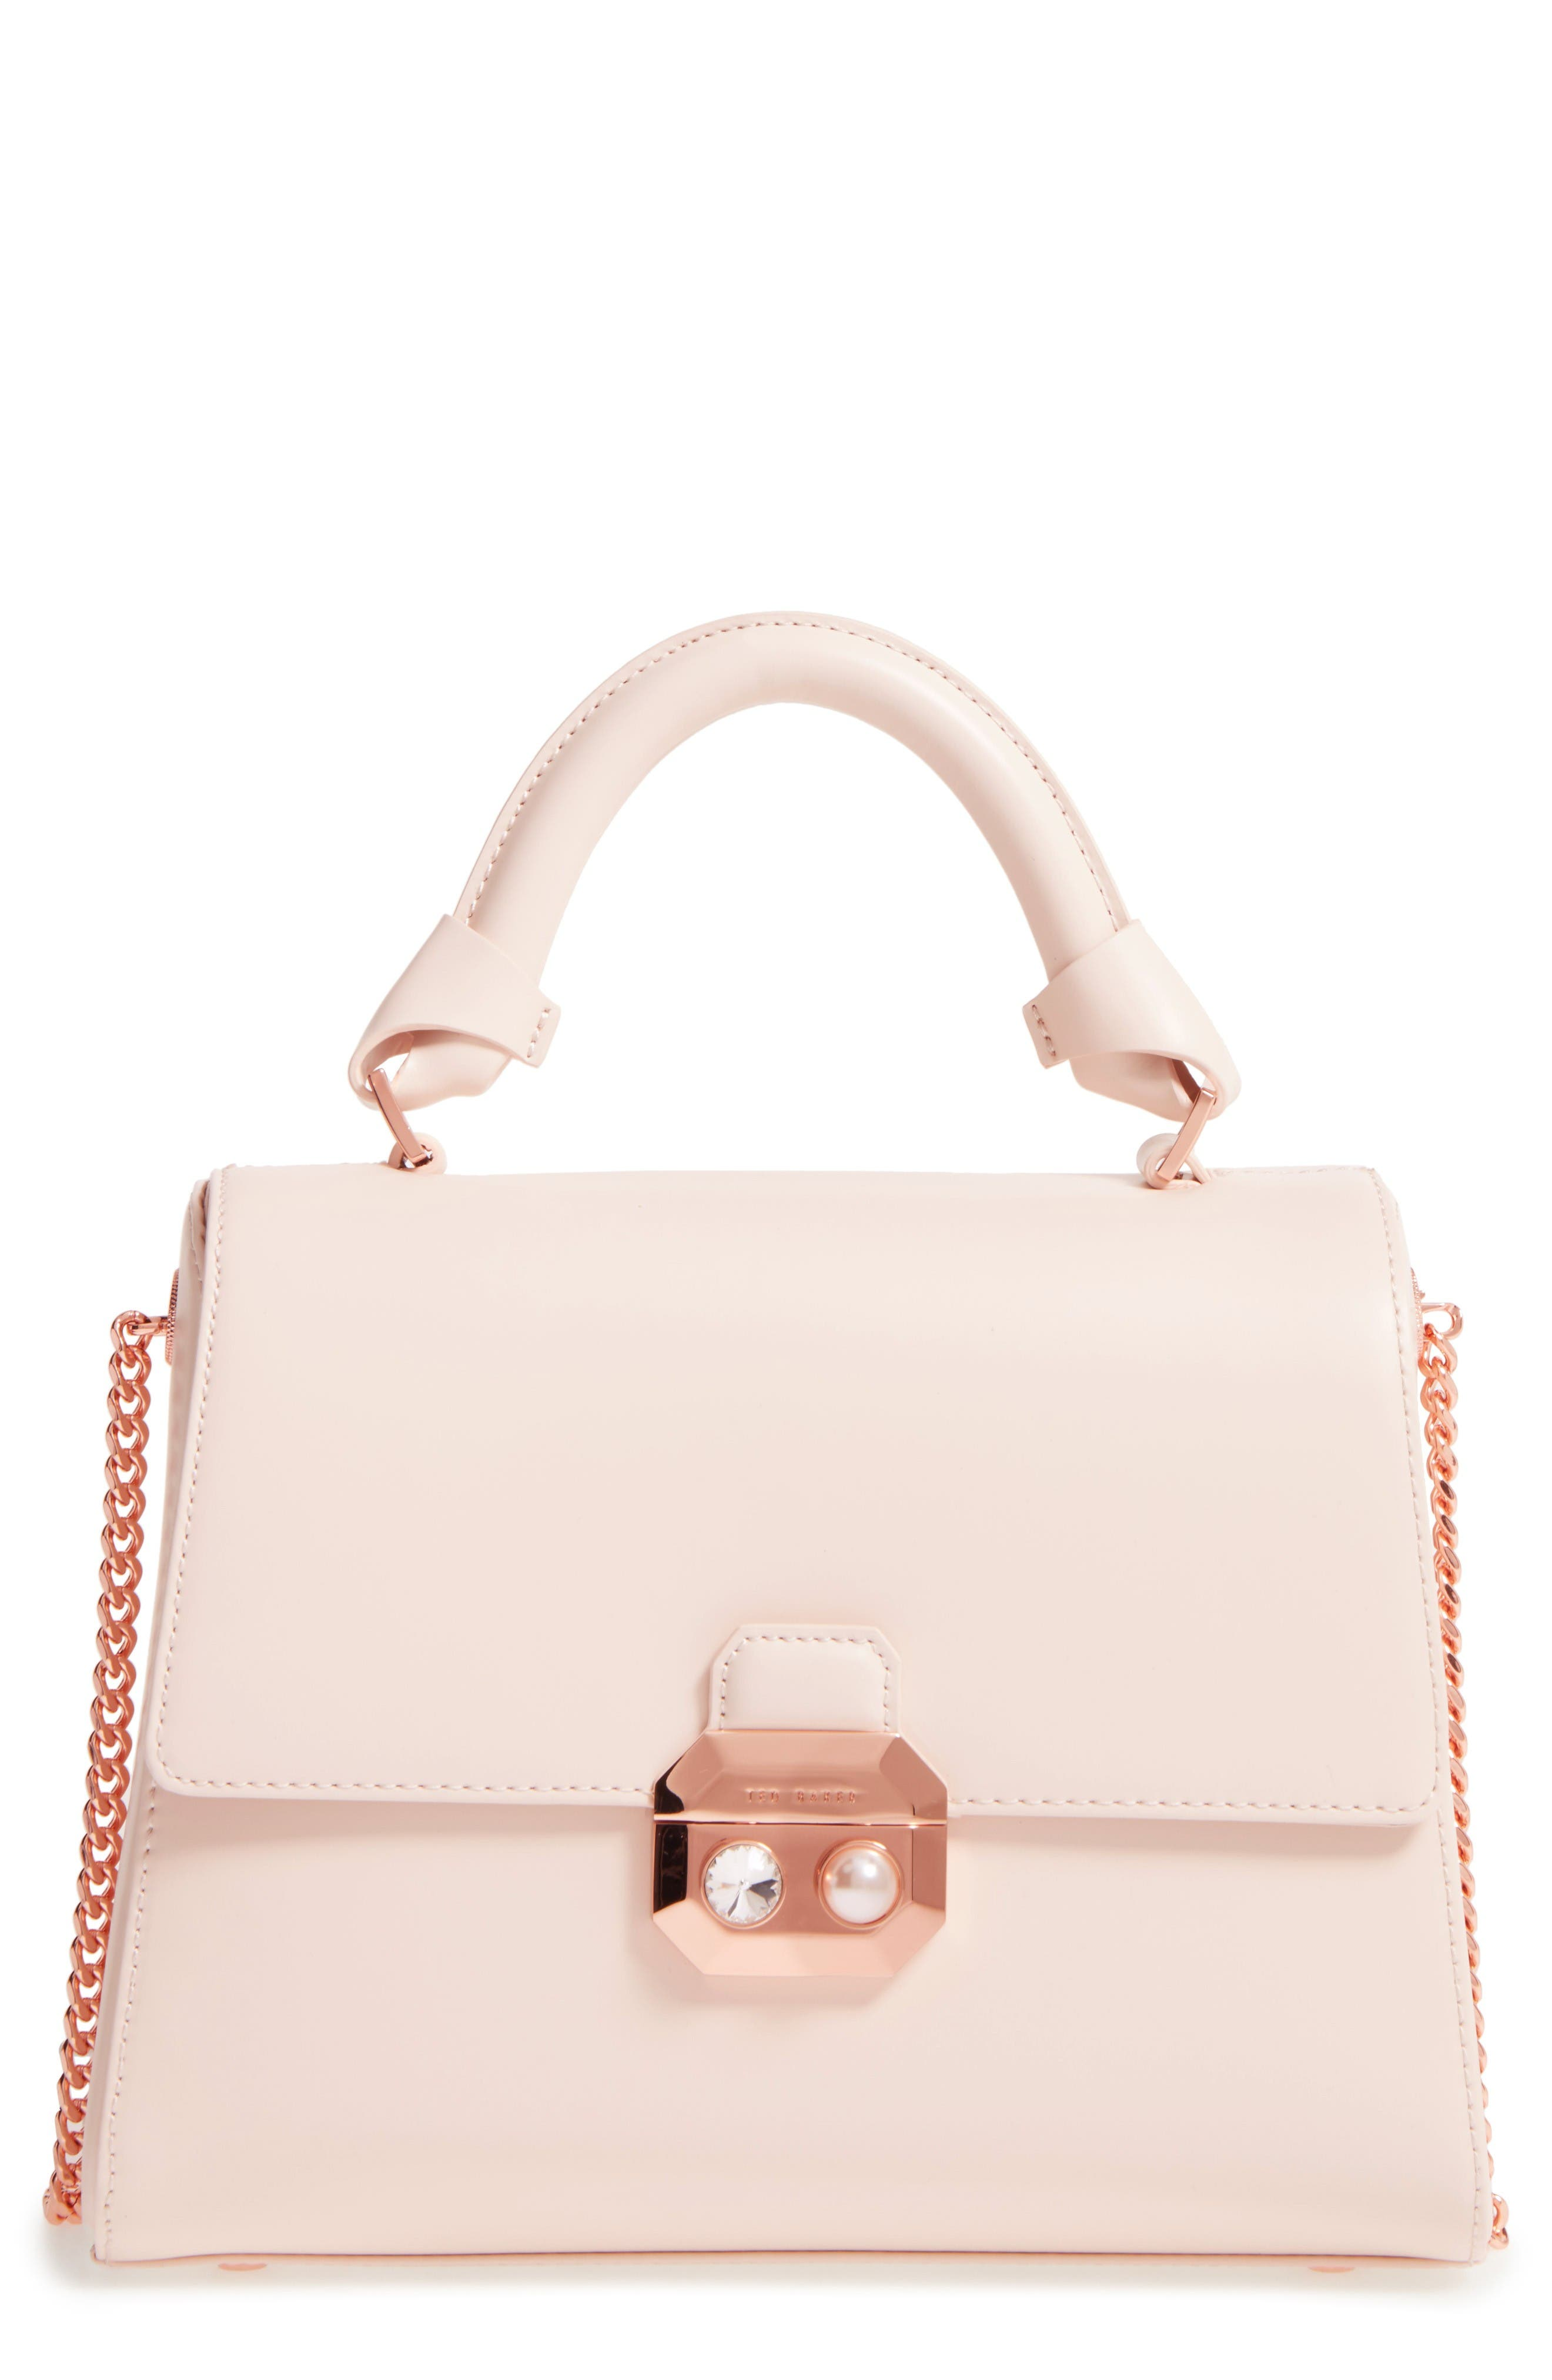 Ted Baker London Leather Top Handle Satchel